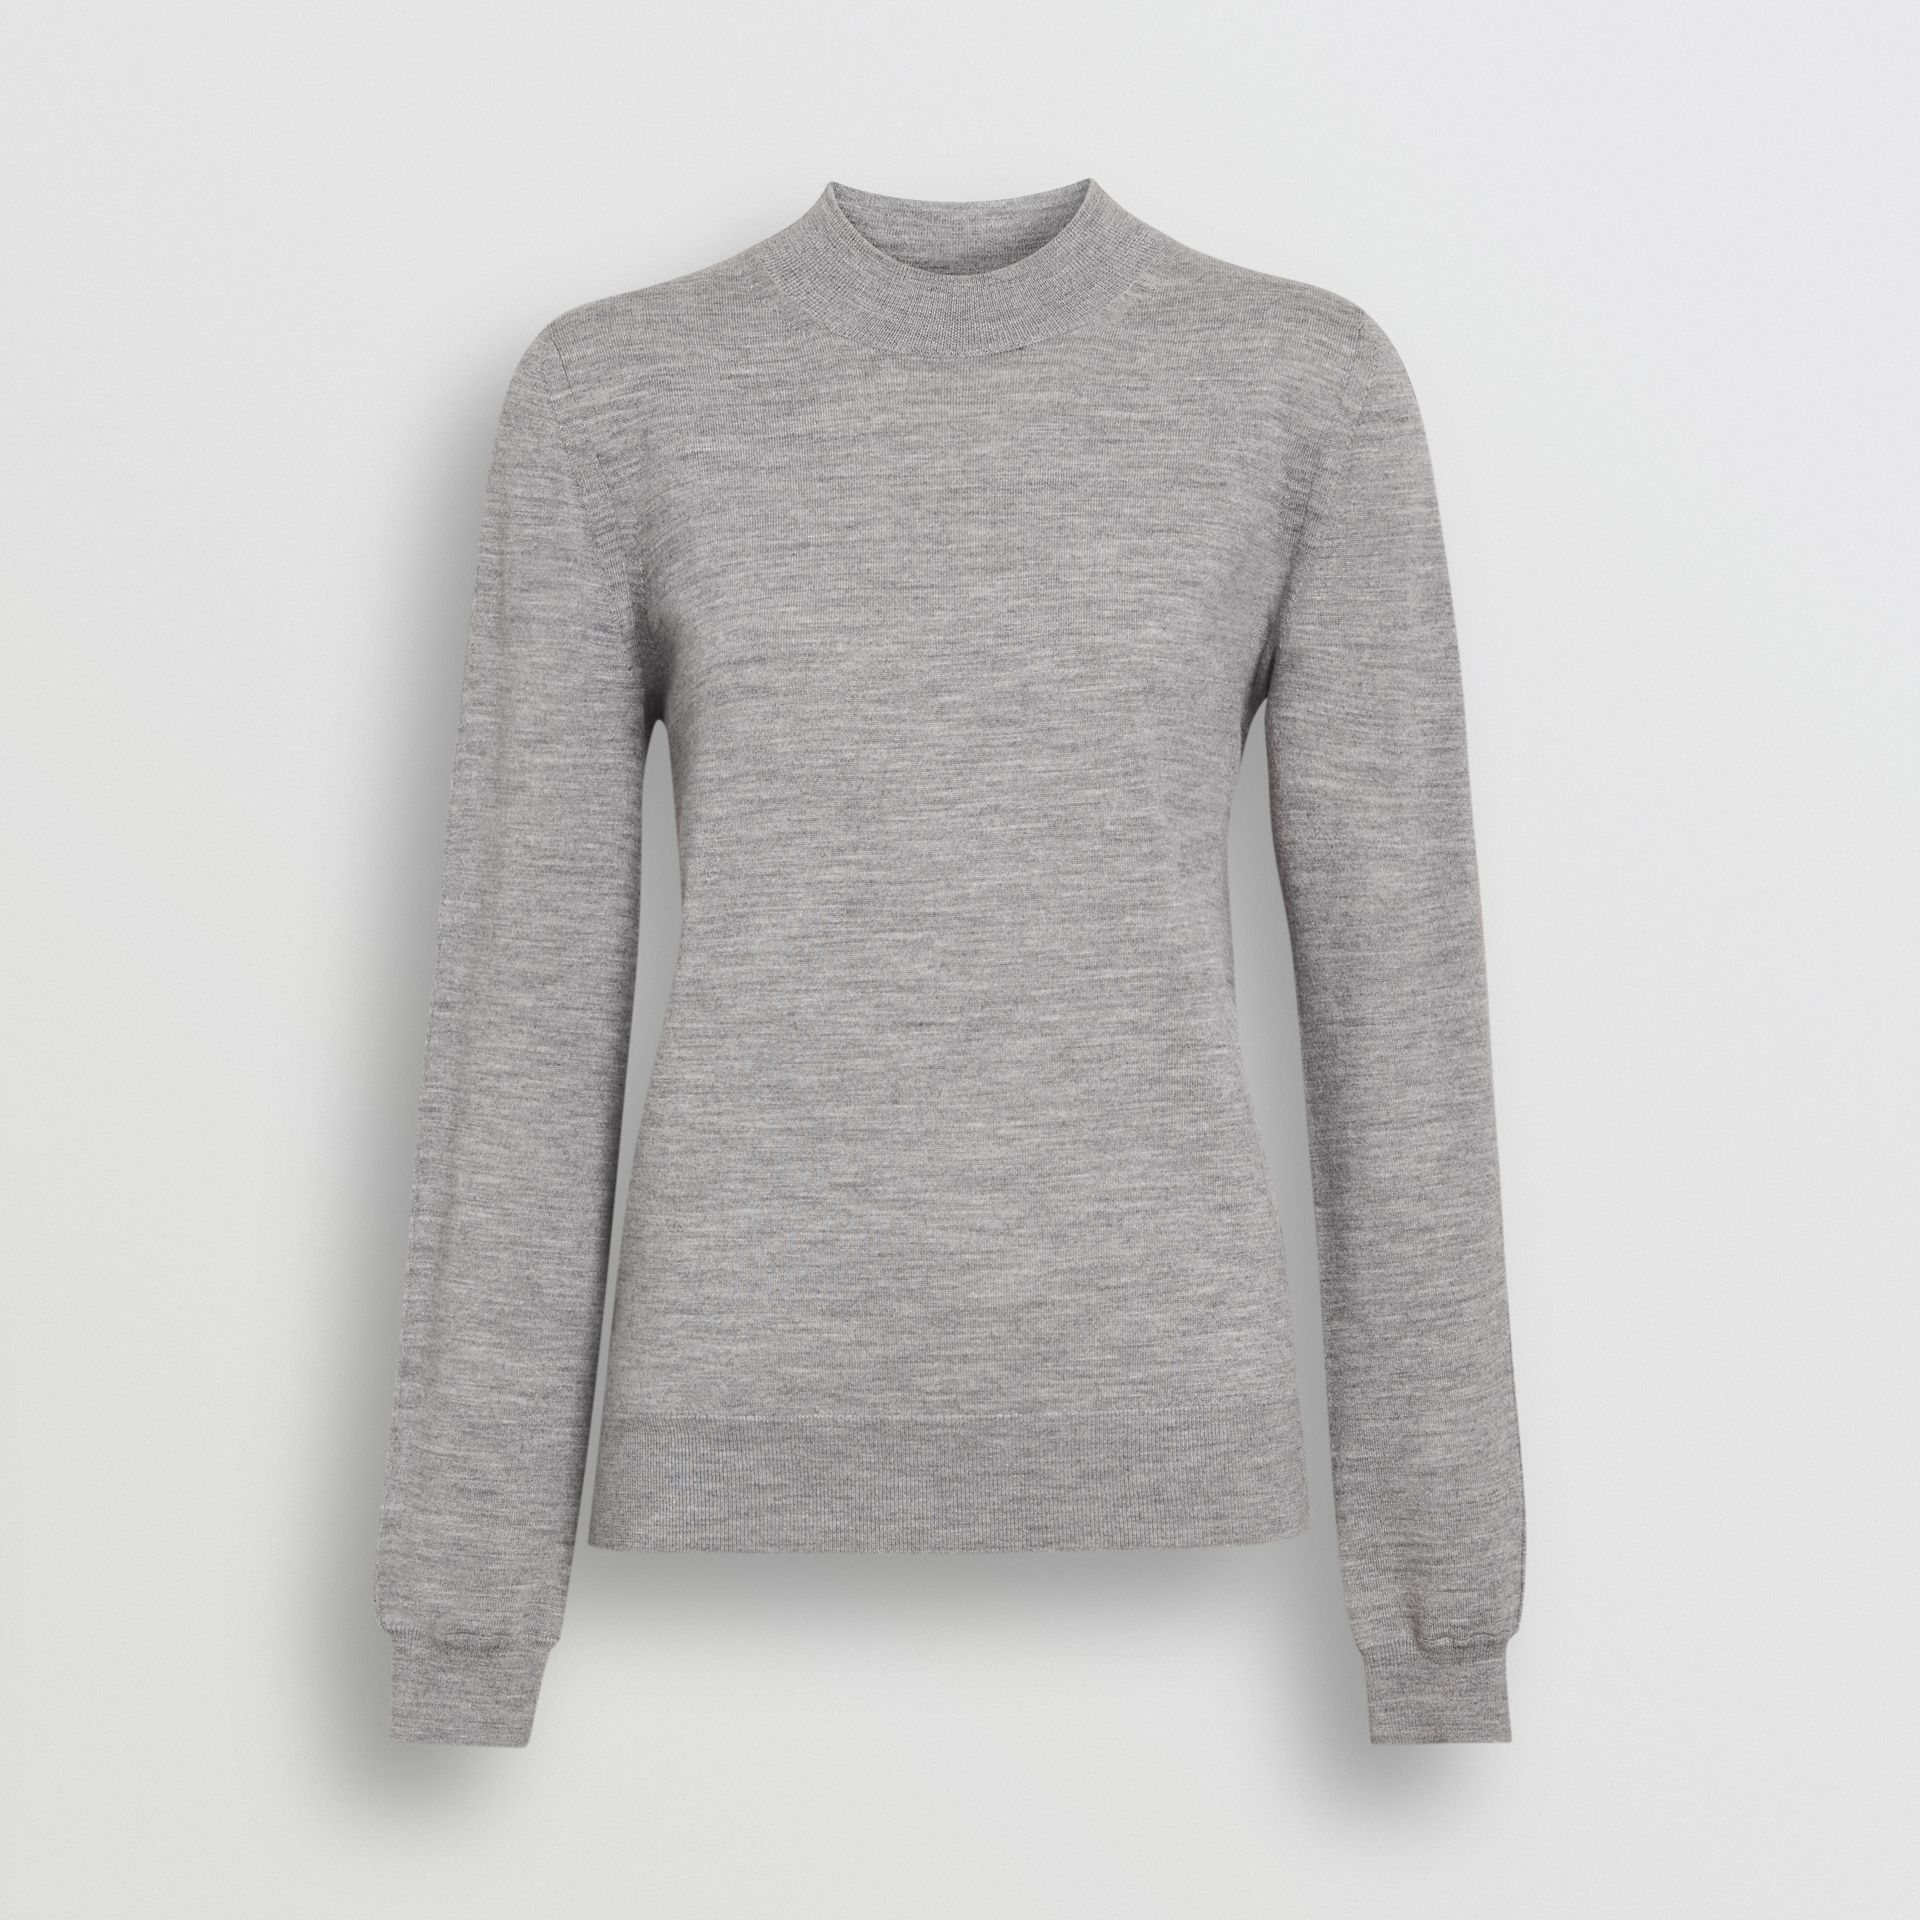 Merino Wool Crew Neck Sweater in Grey Melange - Women | Burberry - gallery image 3